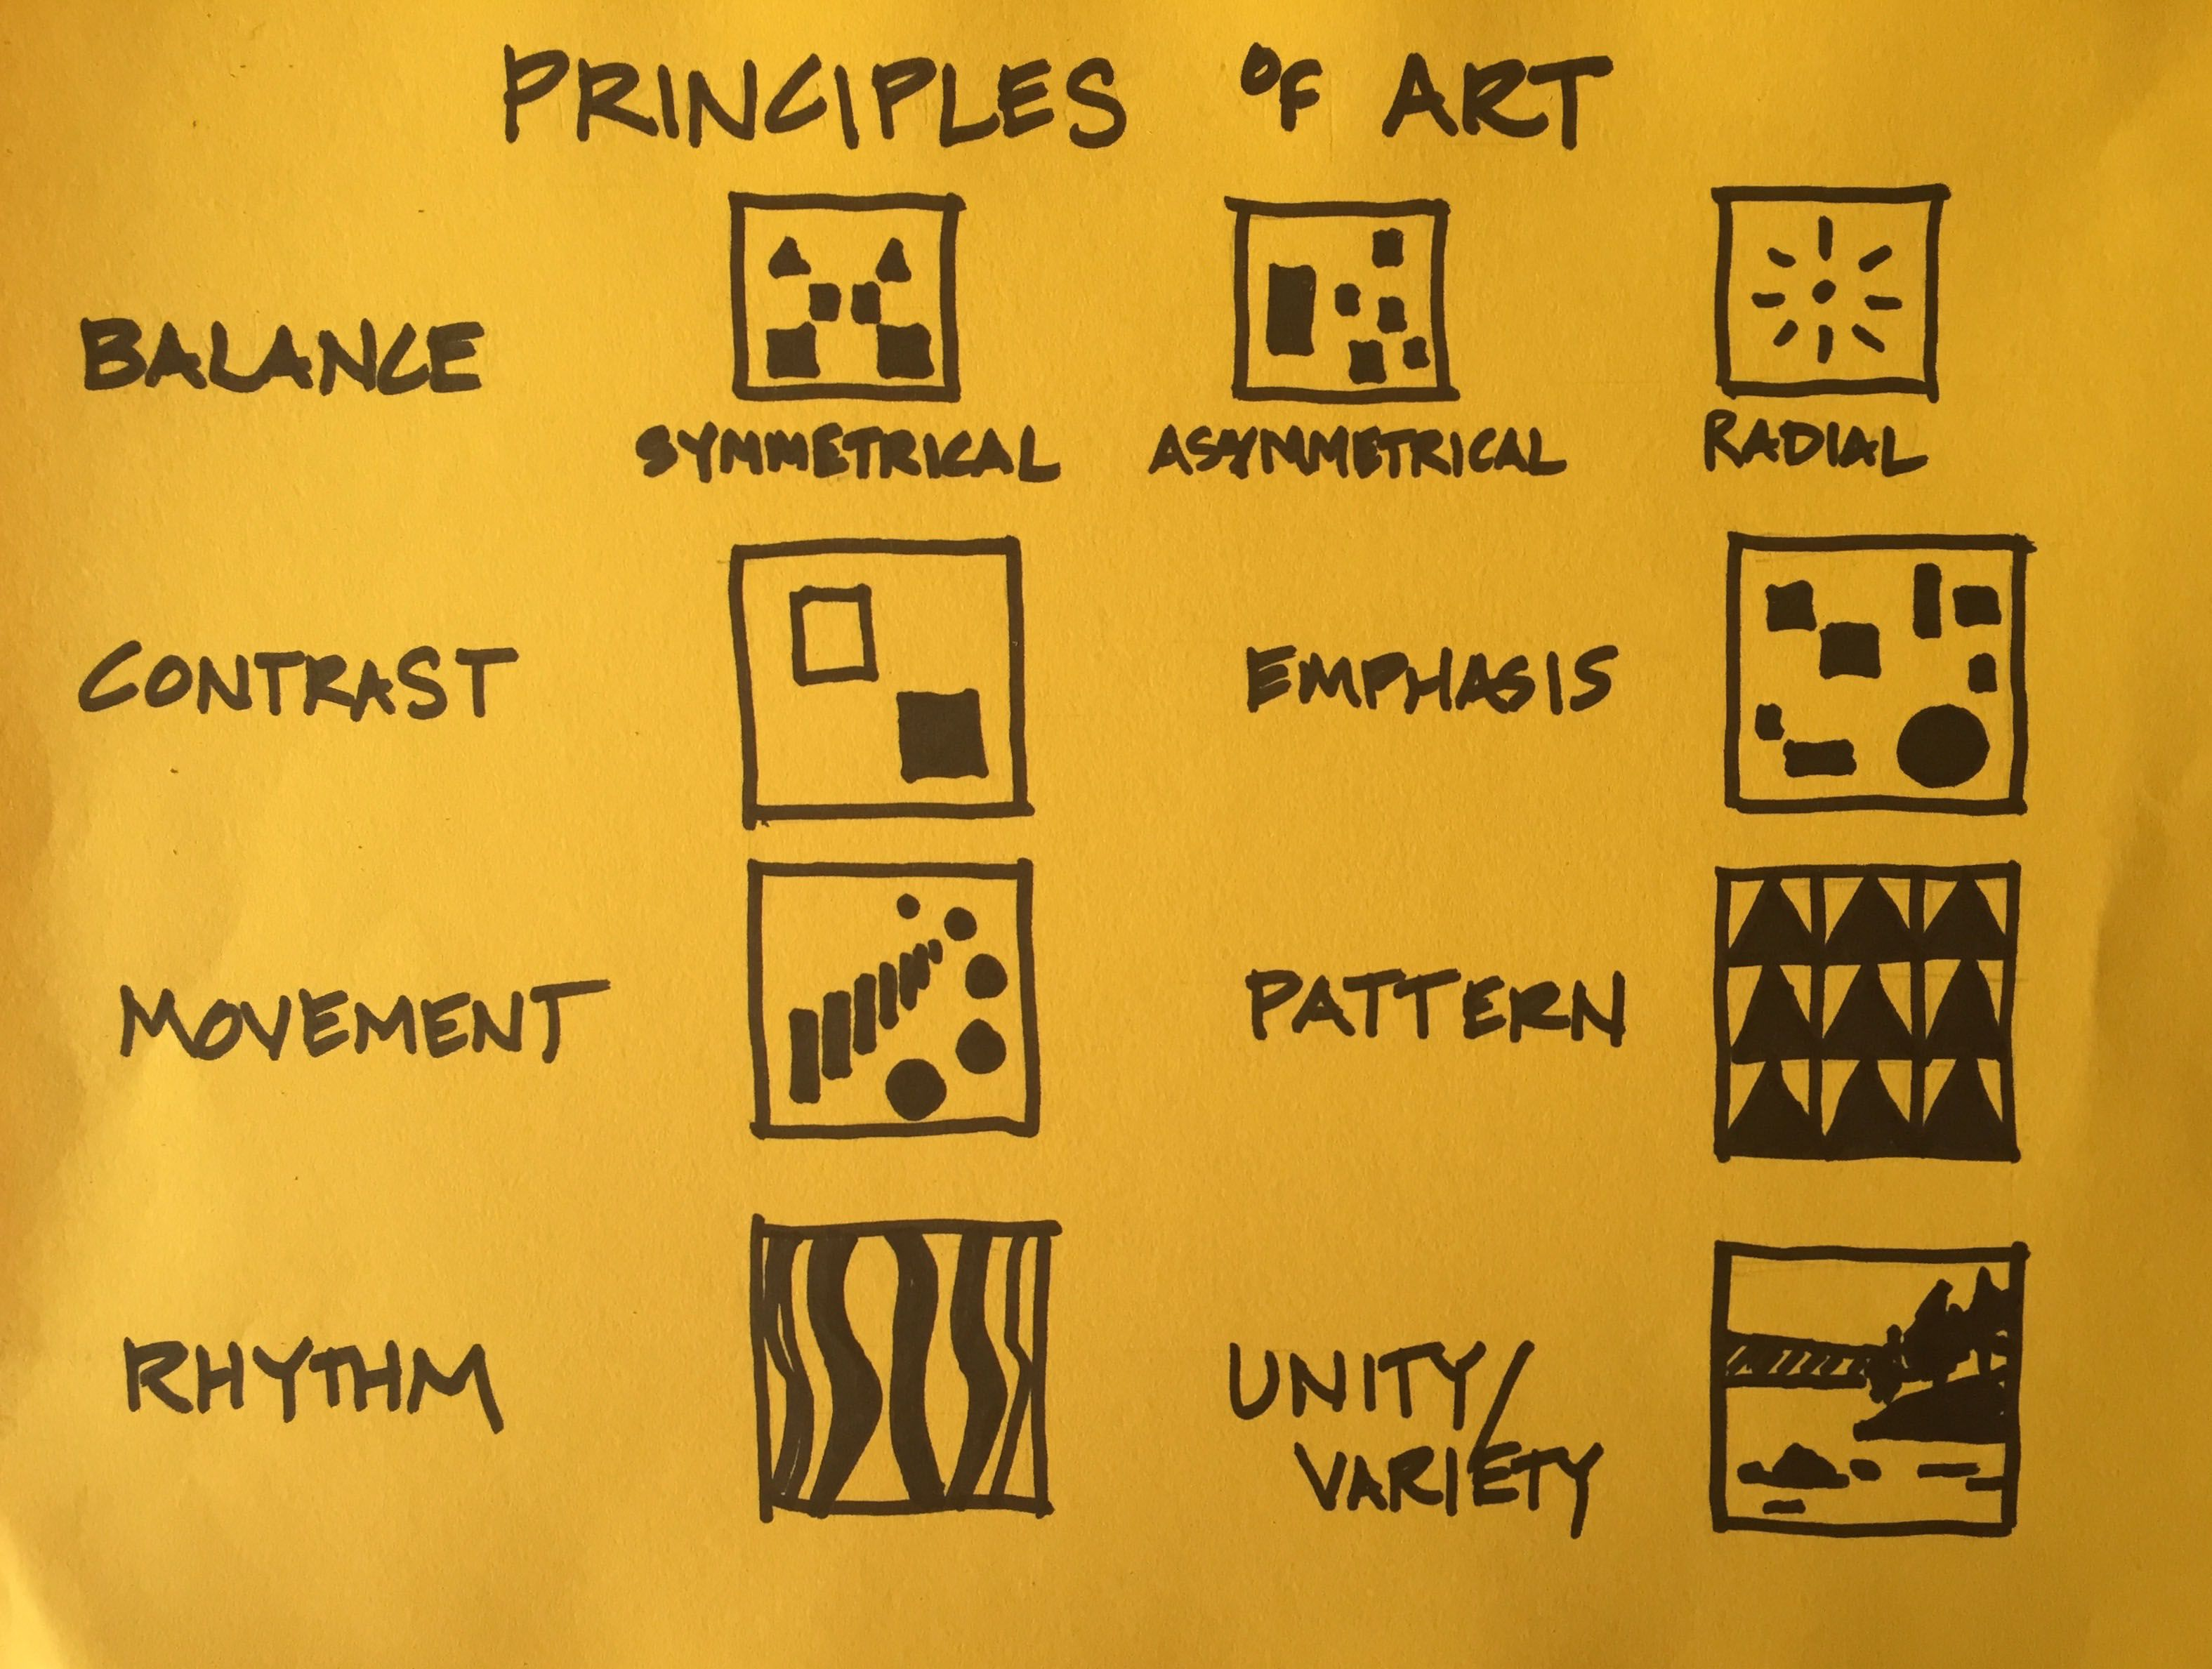 What Is Art And Design : The principles of art and design